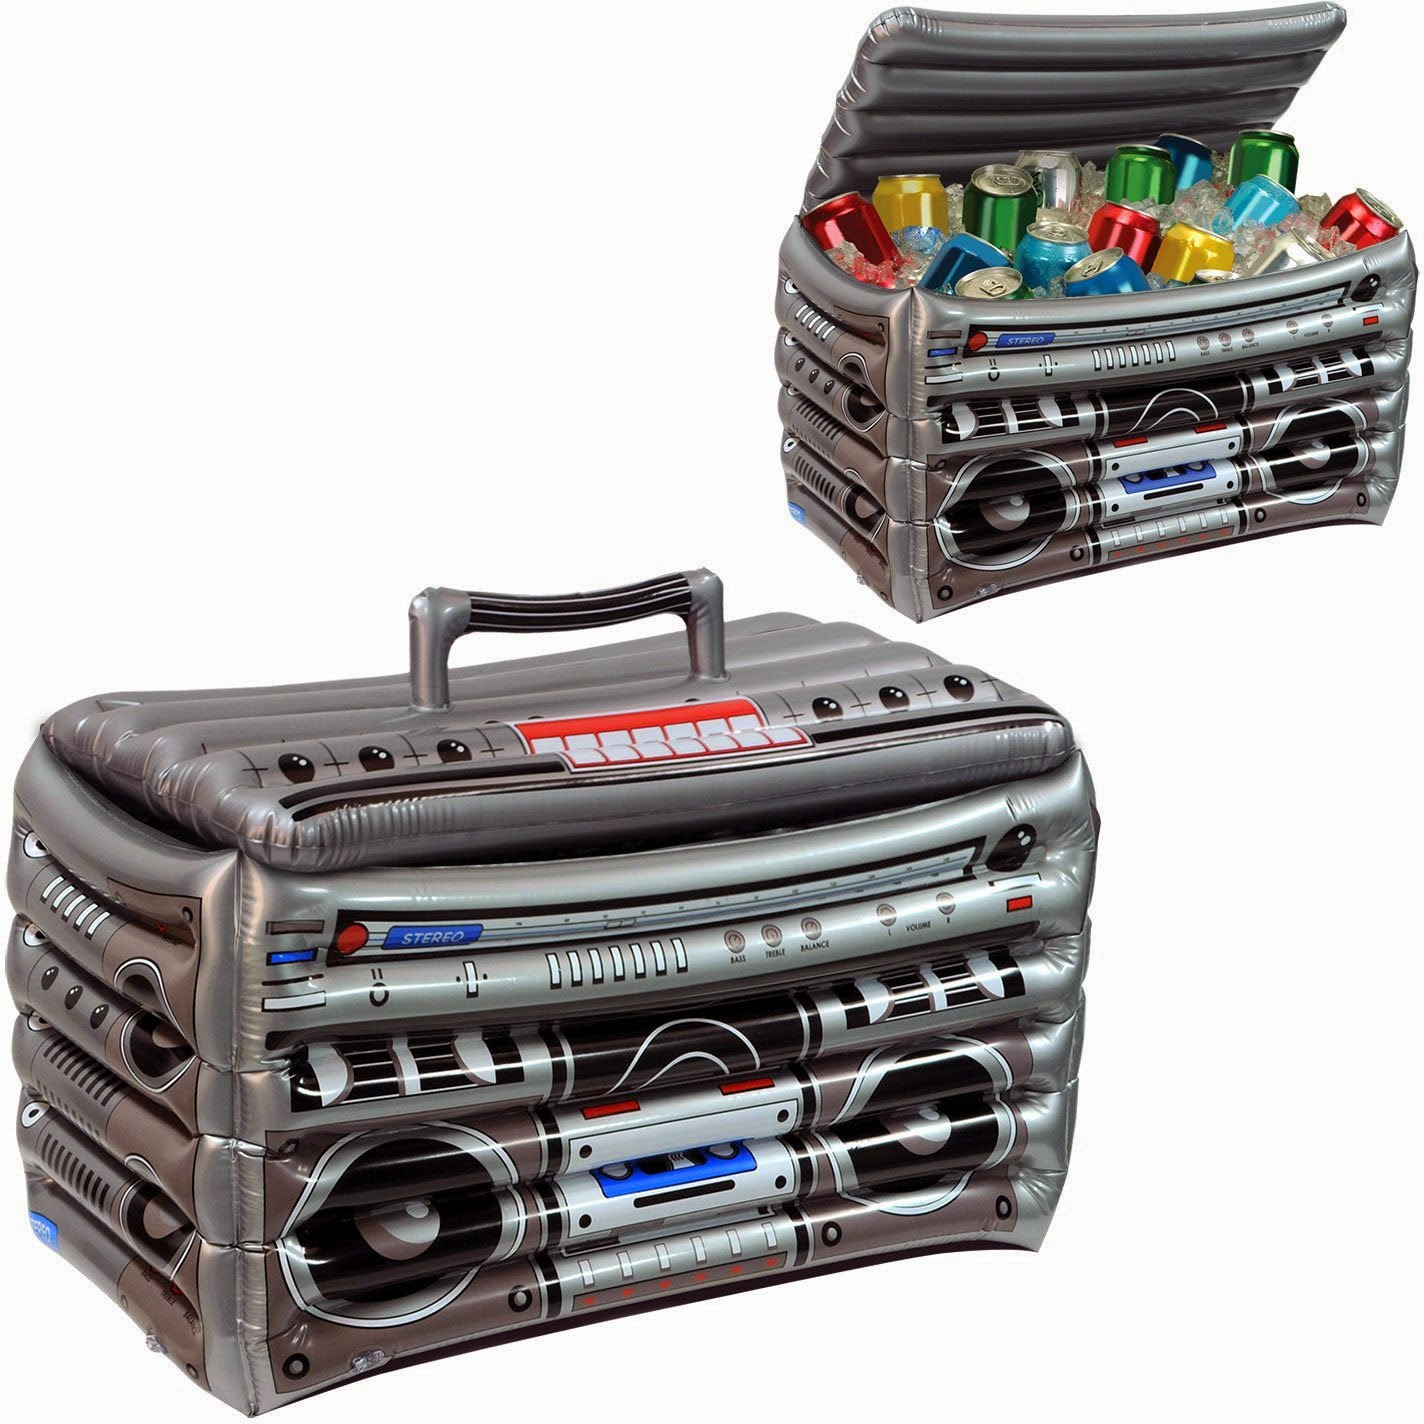 Be the life of the party with this fun inflatable Boom Box cooler which would be a great centerpiece at your next picnic, party or get together.